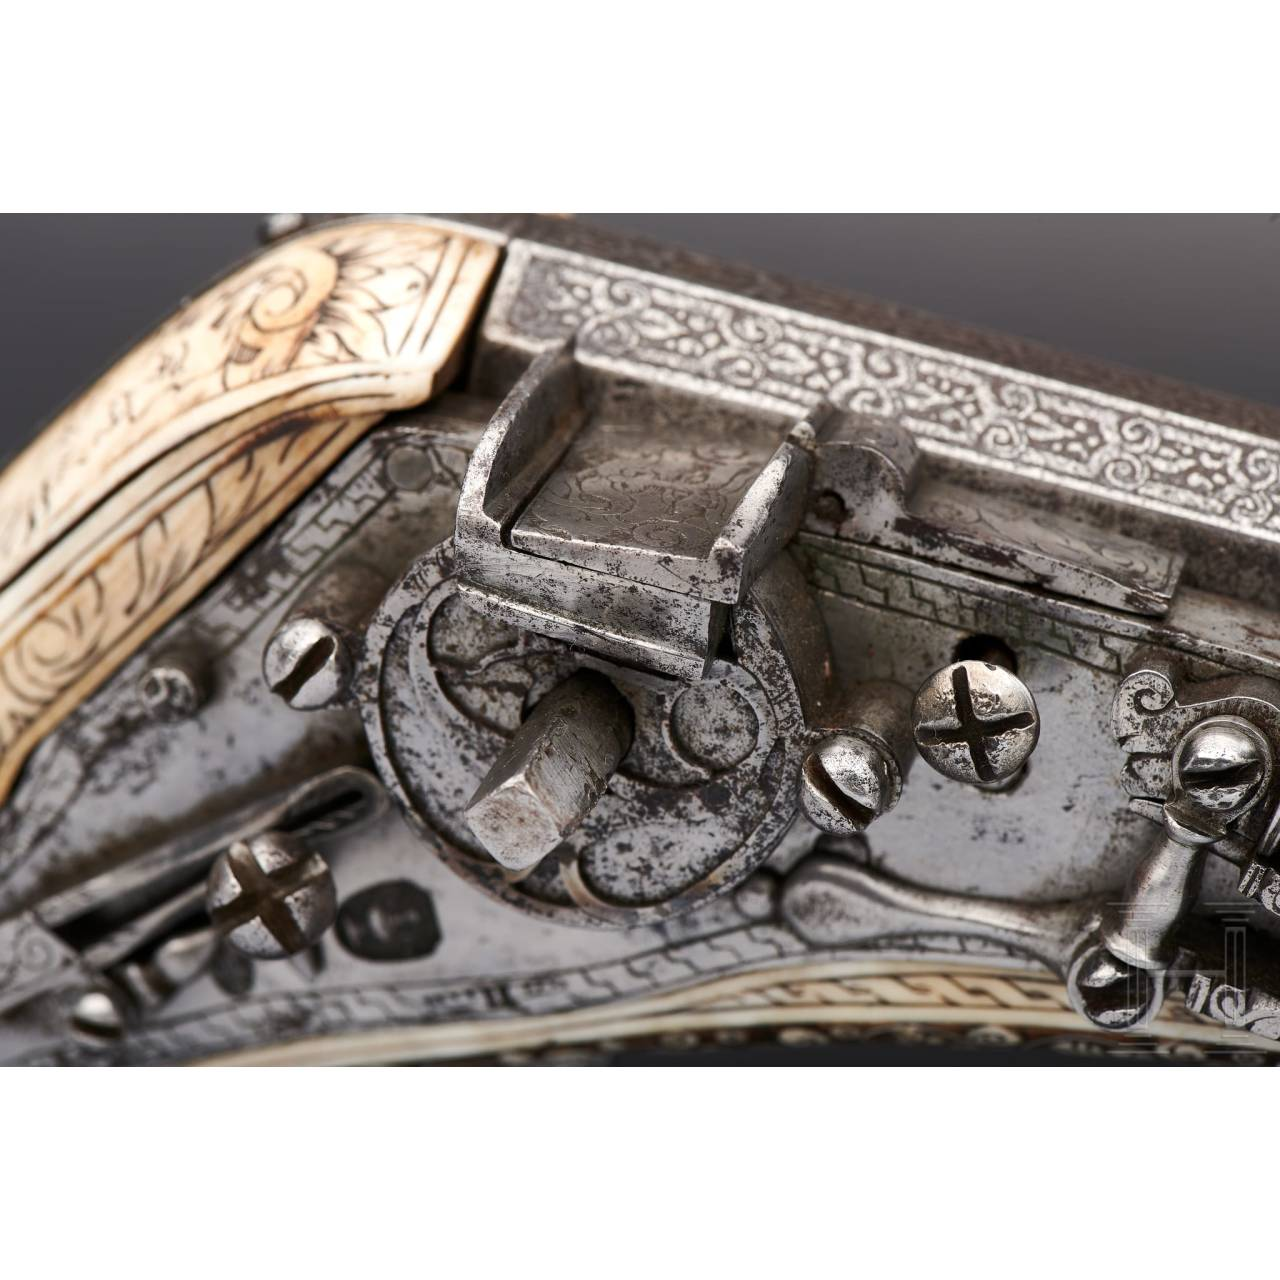 A deluxe wheellock puffer, lavishly inlaid in bone, Nuremberg, circa 1570